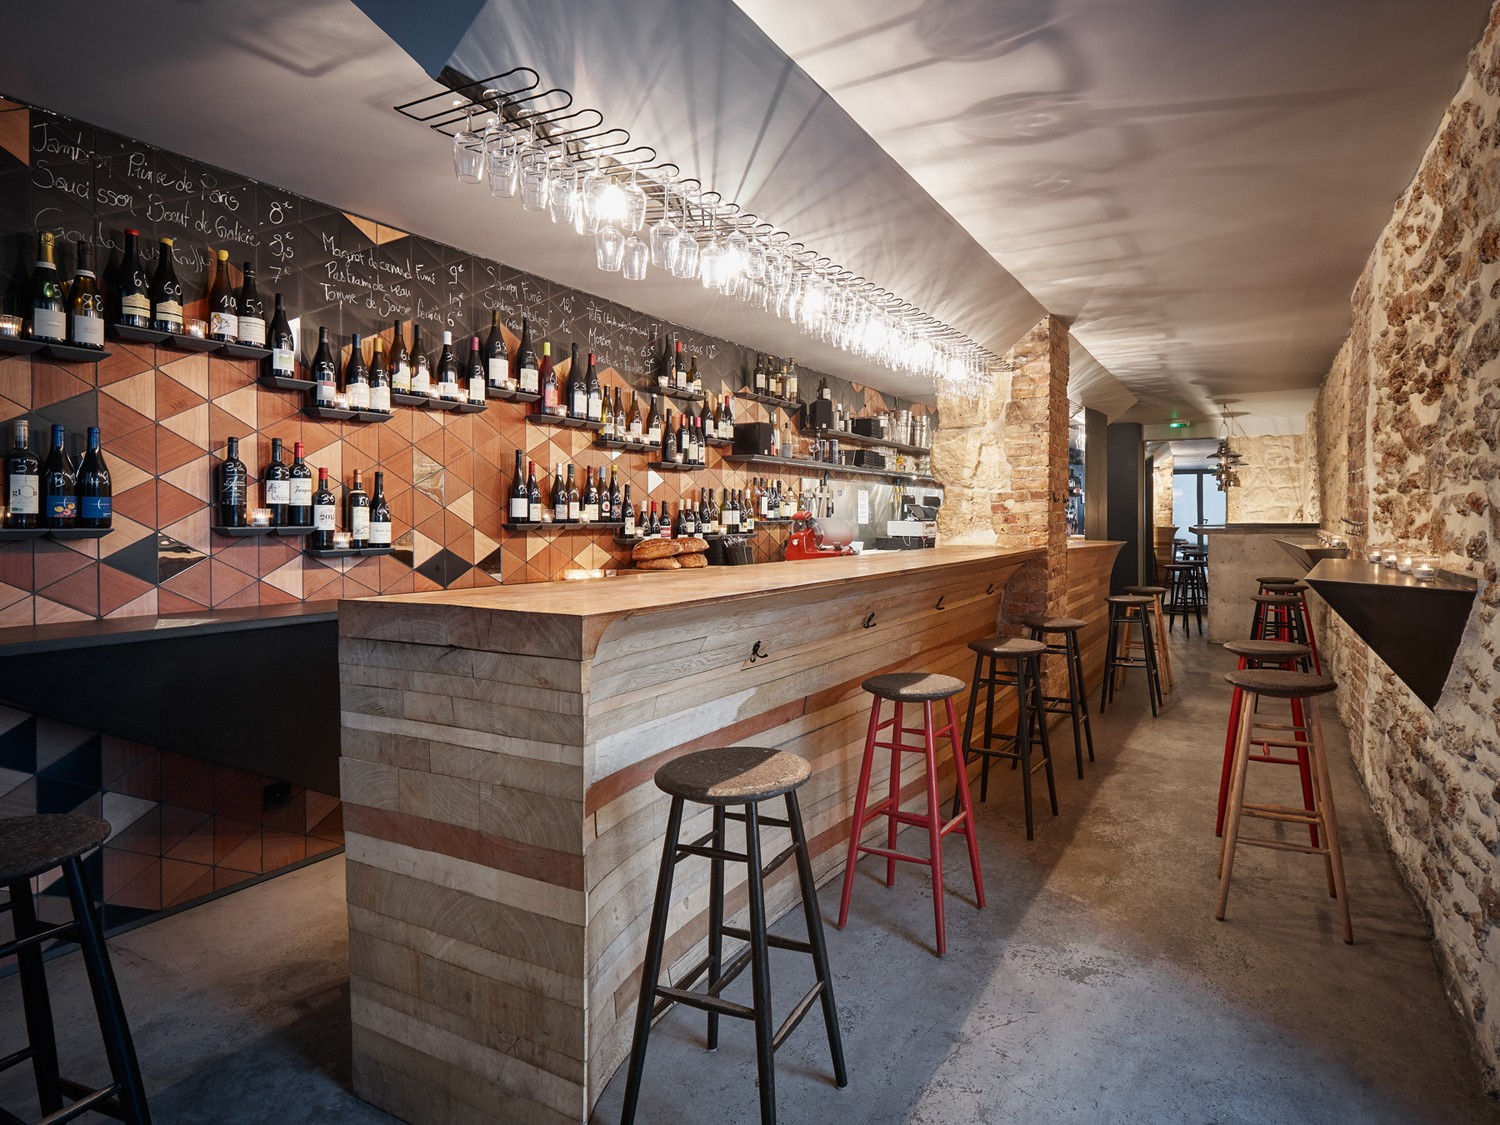 Mobilier De Bar Restaurant Woodwine, Bar à Vins à Paris Par L'atelier Jmca - Journal